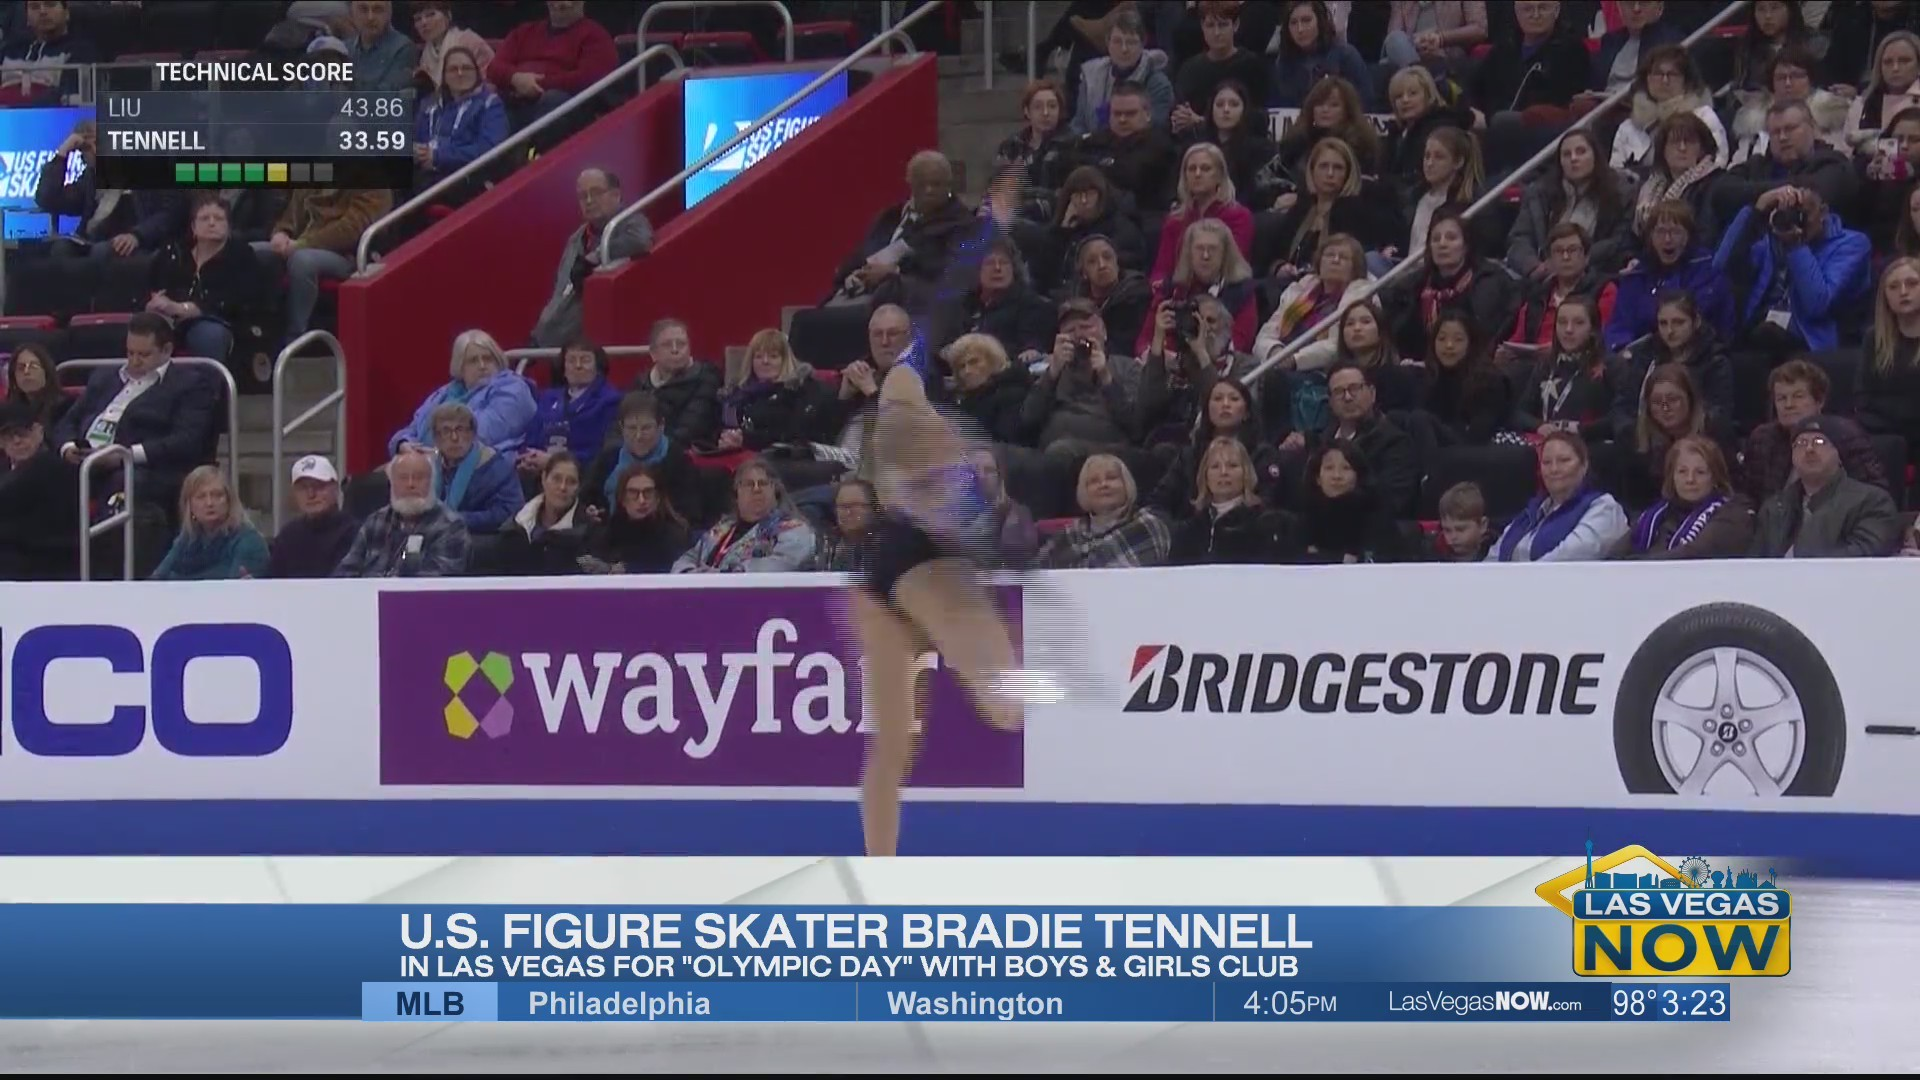 Figure skater Bradie Tennel visits Vegas for Olympic Day